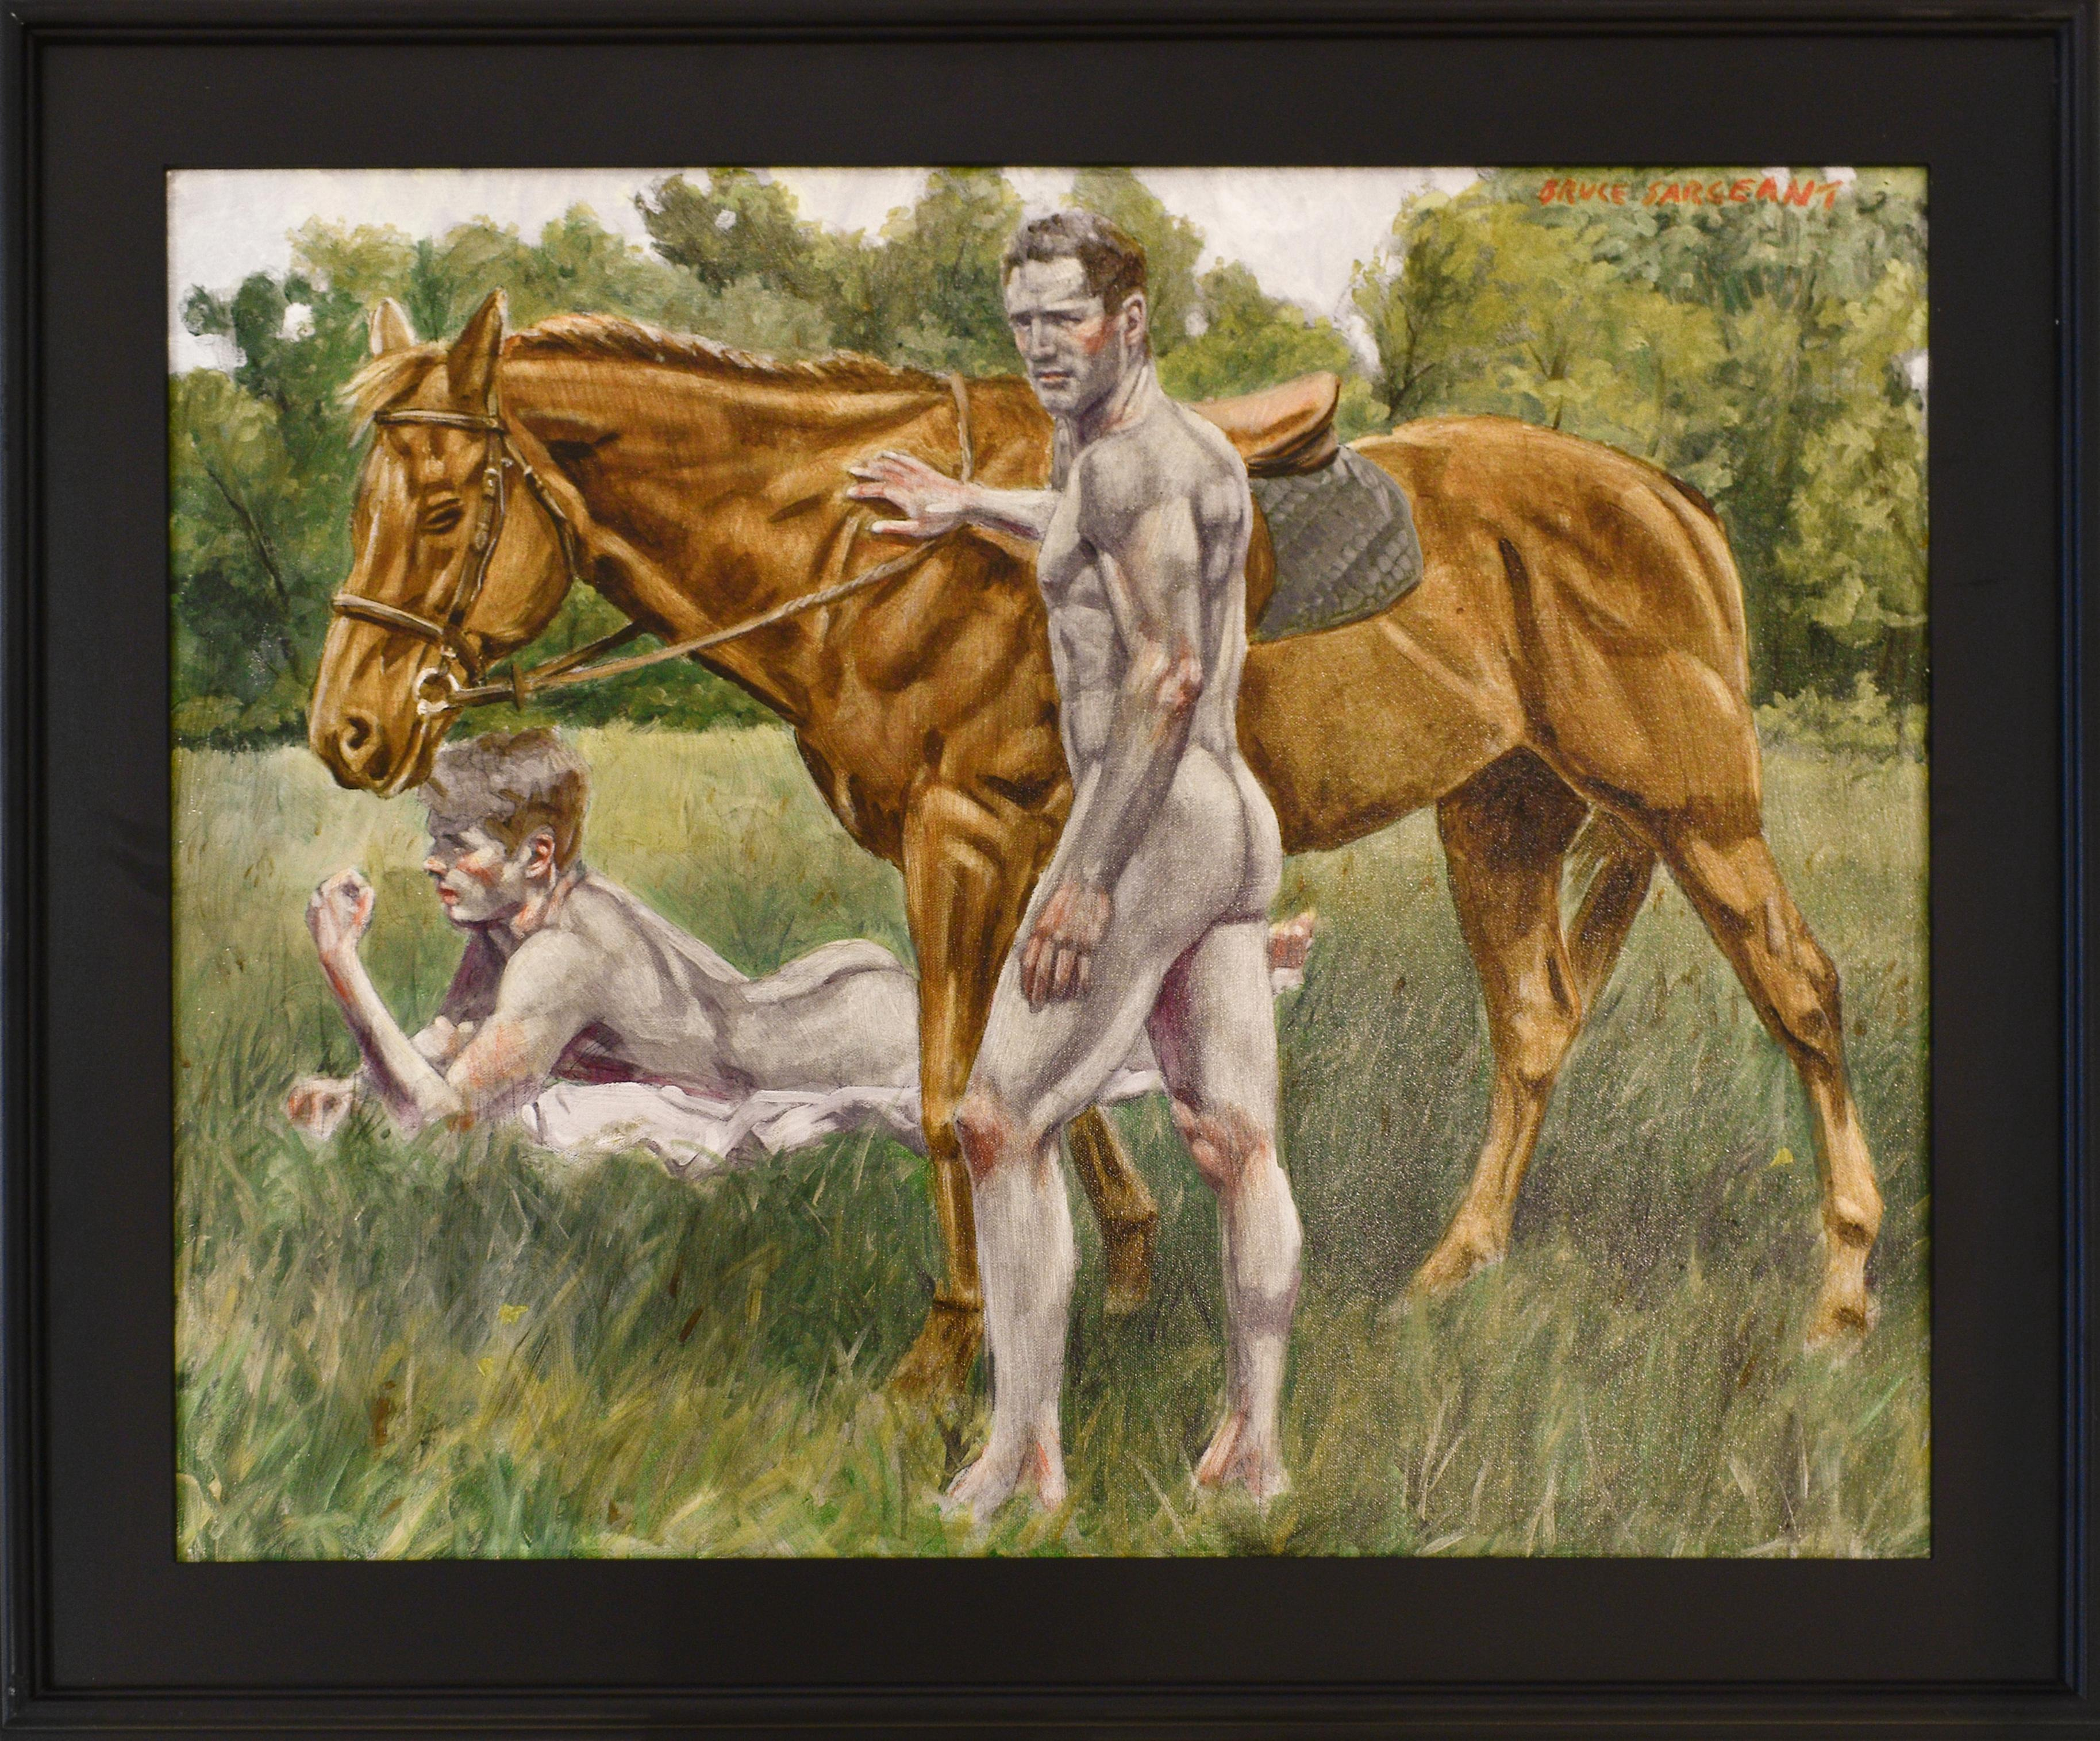 Morning Ride (Academic Figurative Oil Painting of Two Nude Men and Horse)